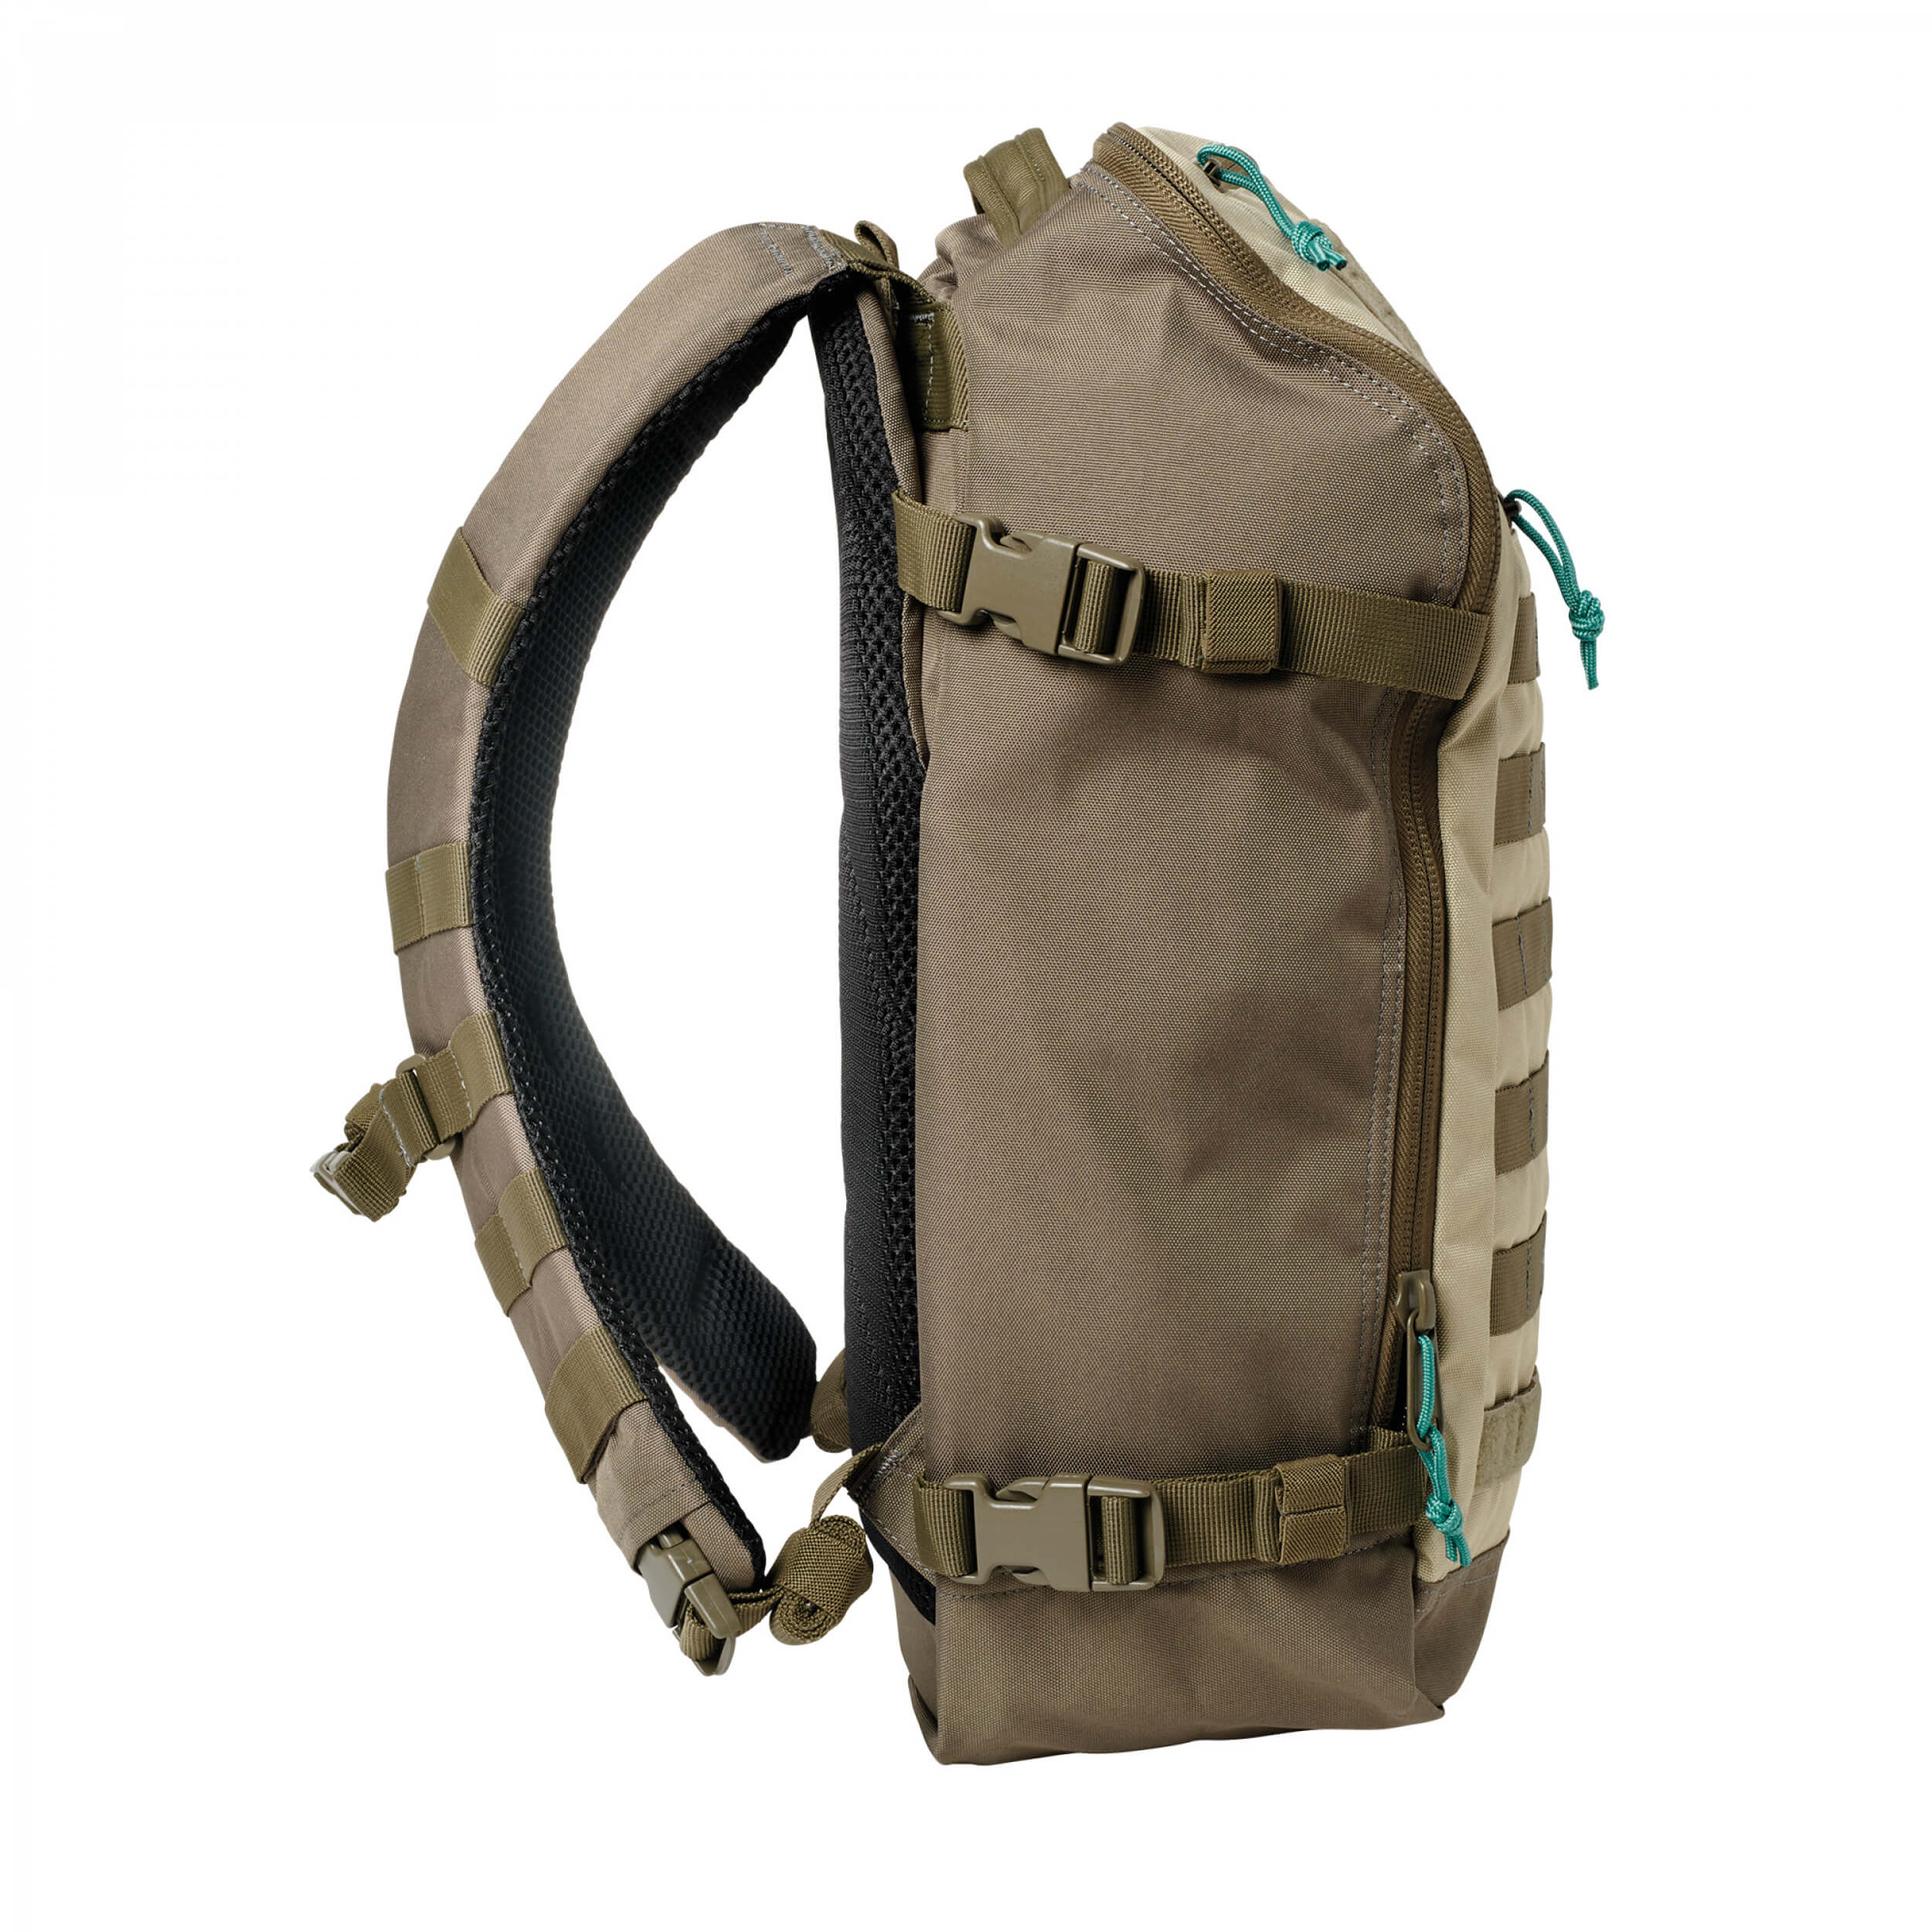 5.11 Tactical Rapid Quad Zip Pack 27L Backpack KHAKI (055)